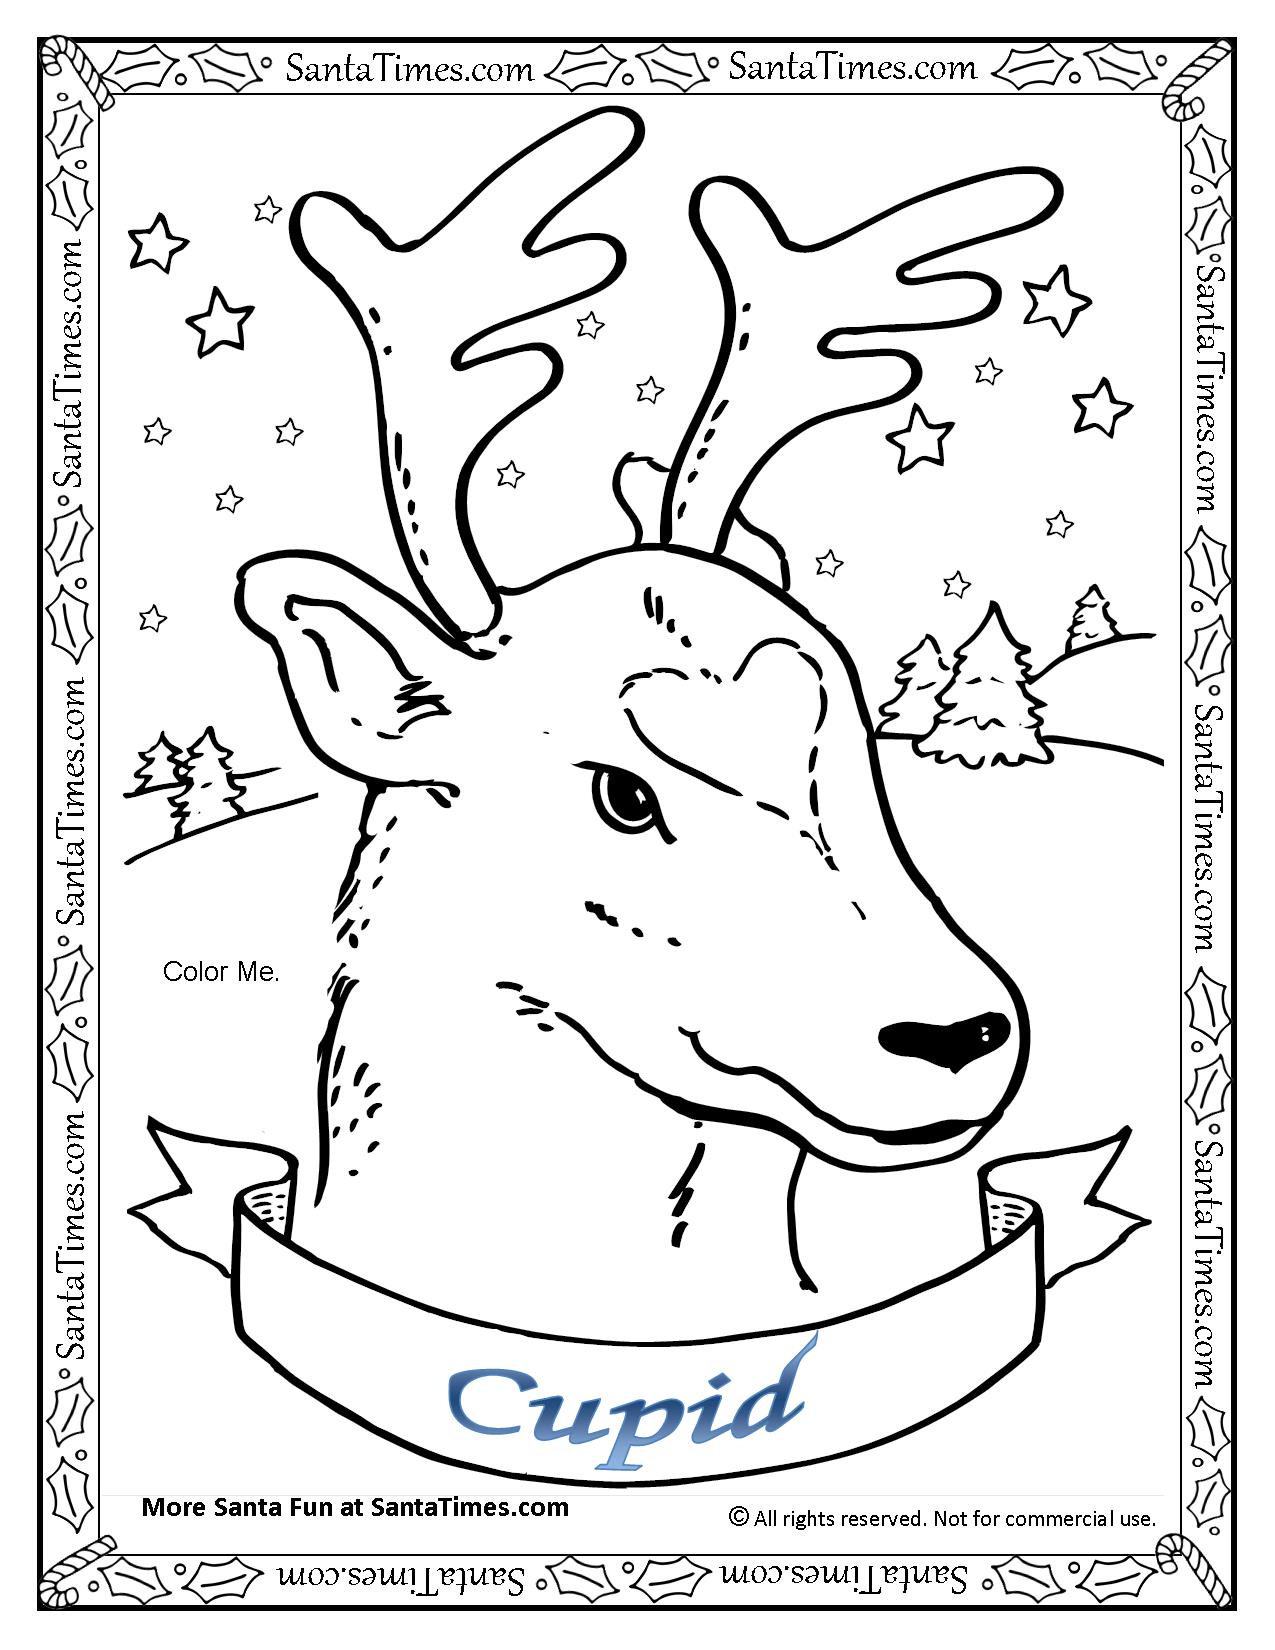 Santa And Reindeer Coloring Pages Free Printable With Cupid The